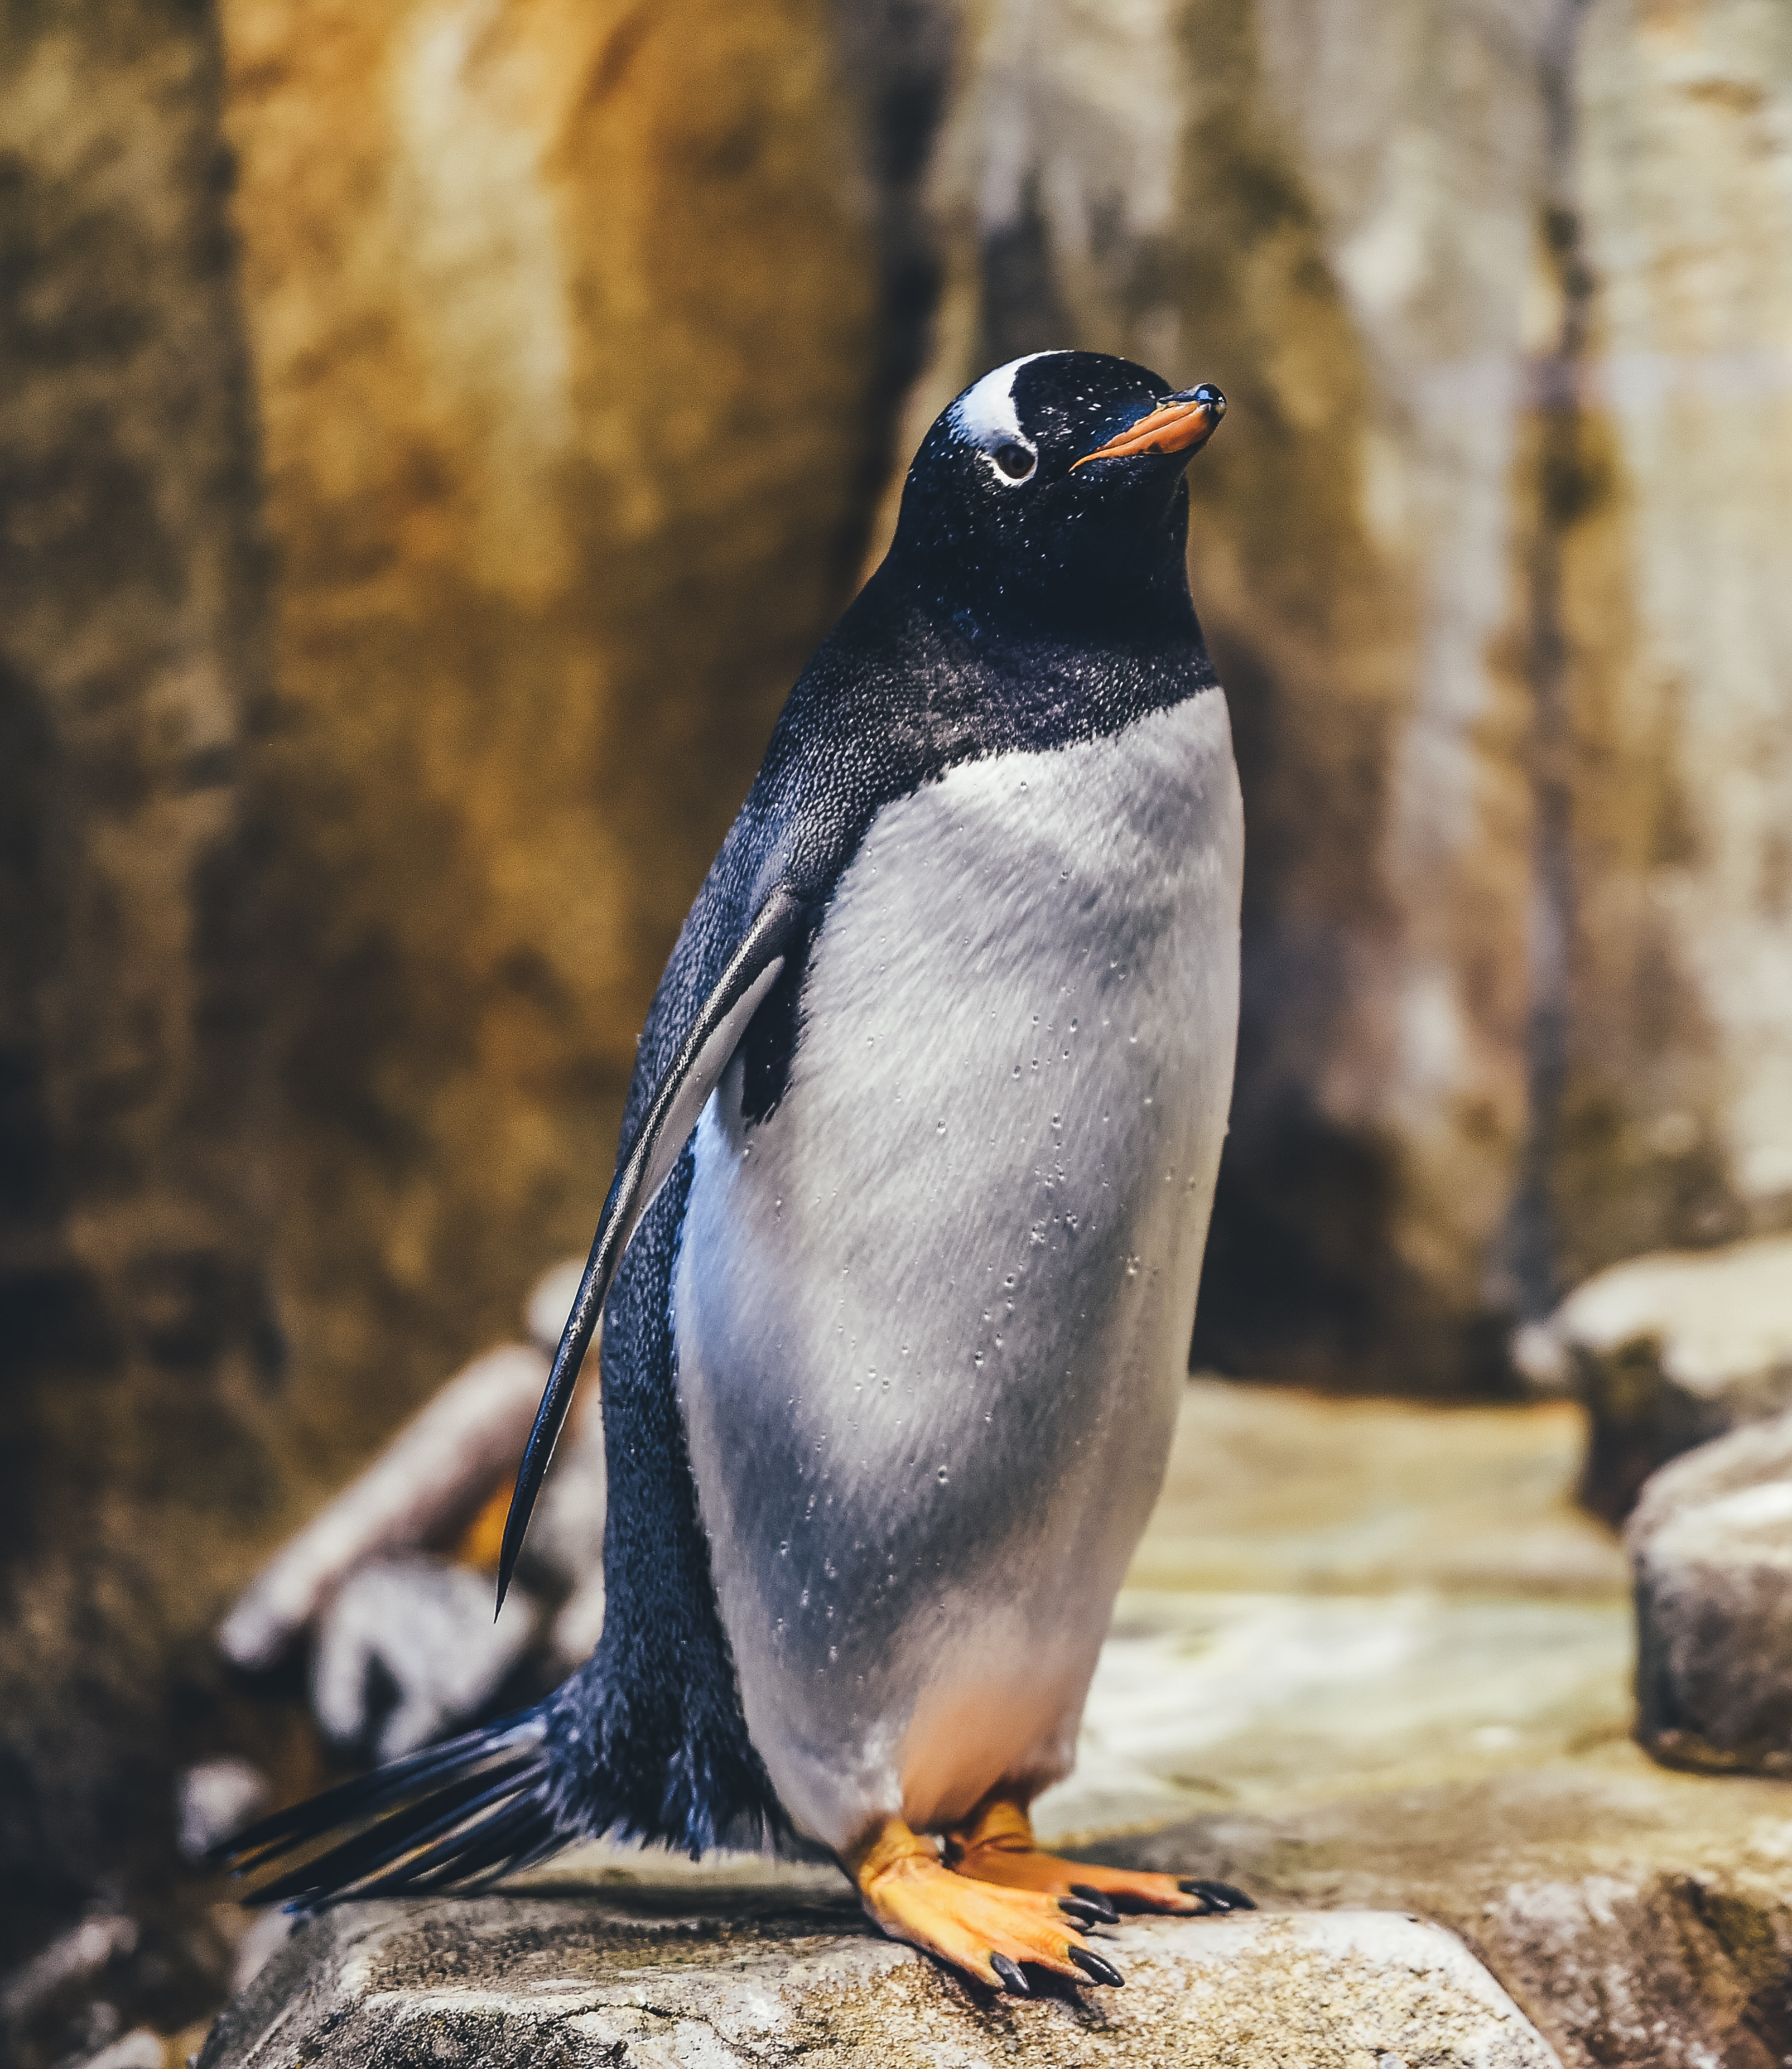 Penguin standing on a rock